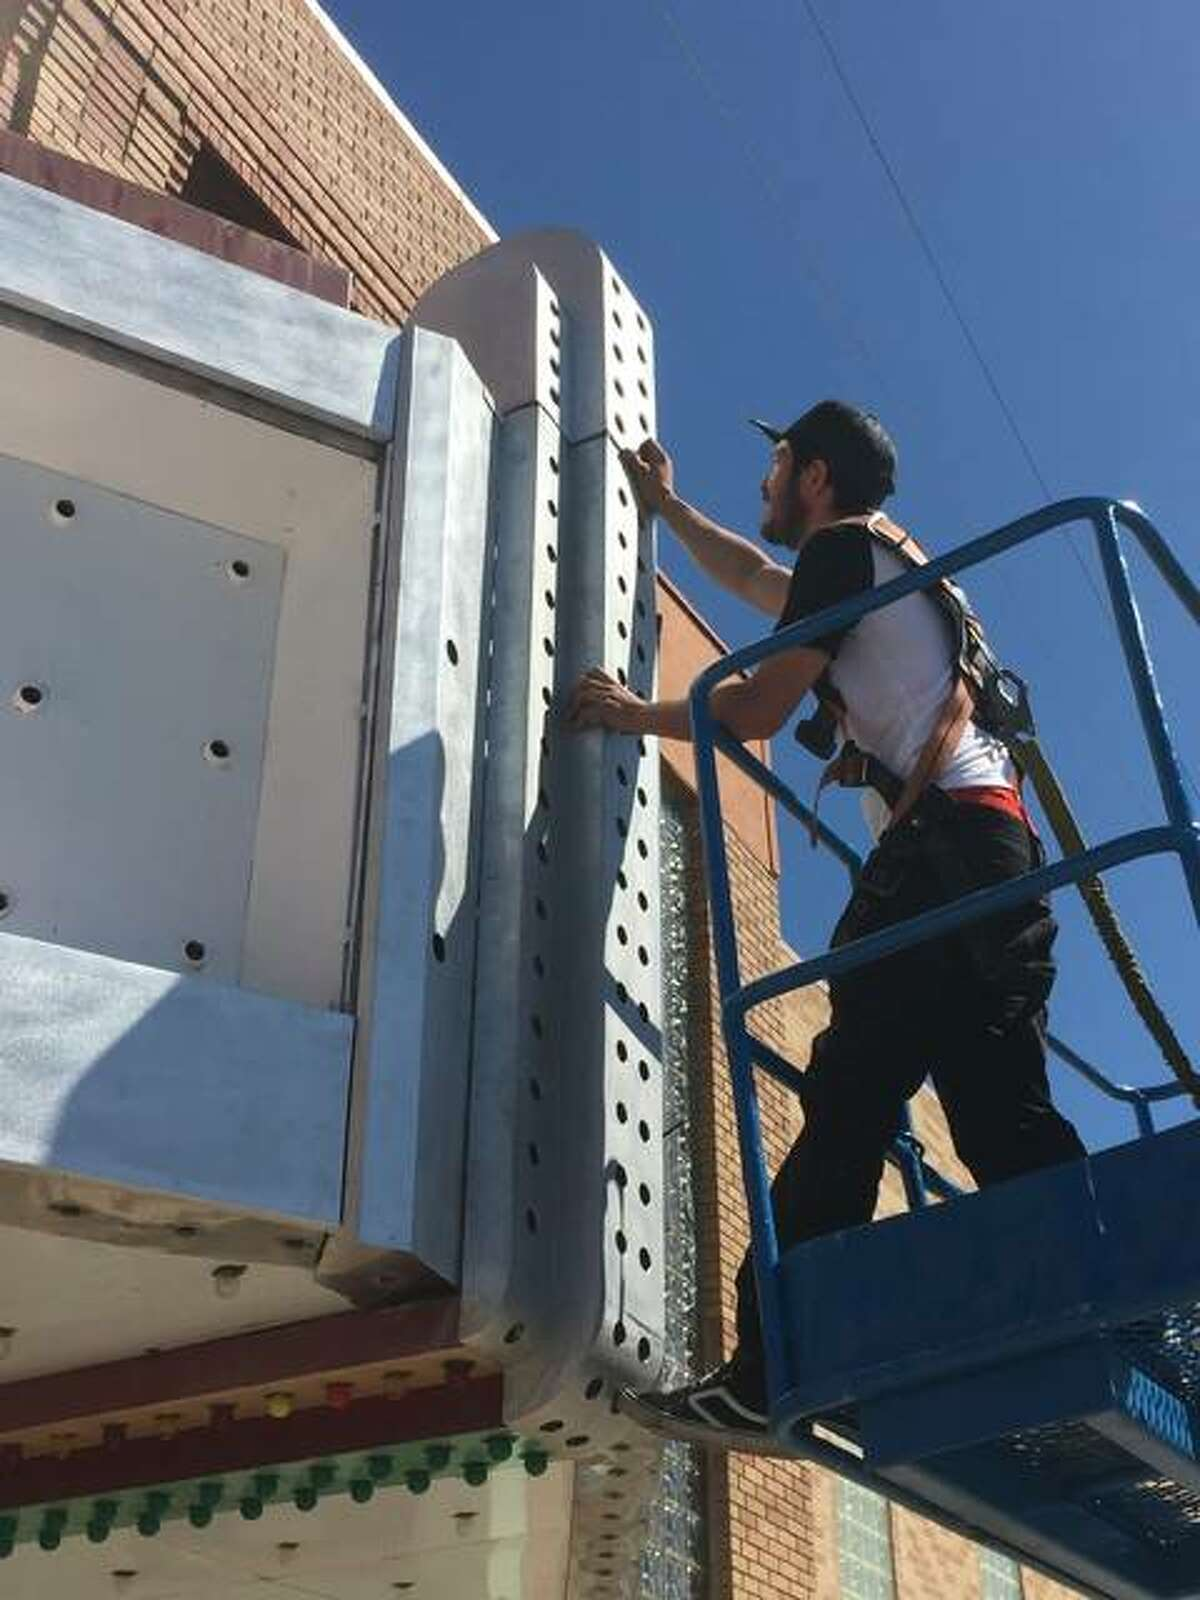 Chris Staar, owner of NeonWorks Inc. of East Alton, works on The Stadium Theatre marquee restoration in Jerseryville during the start of May. Opened in 1949, the Jerseyville movie theater will host a ribbon cutting on Thursday night in honor of its upgrades.